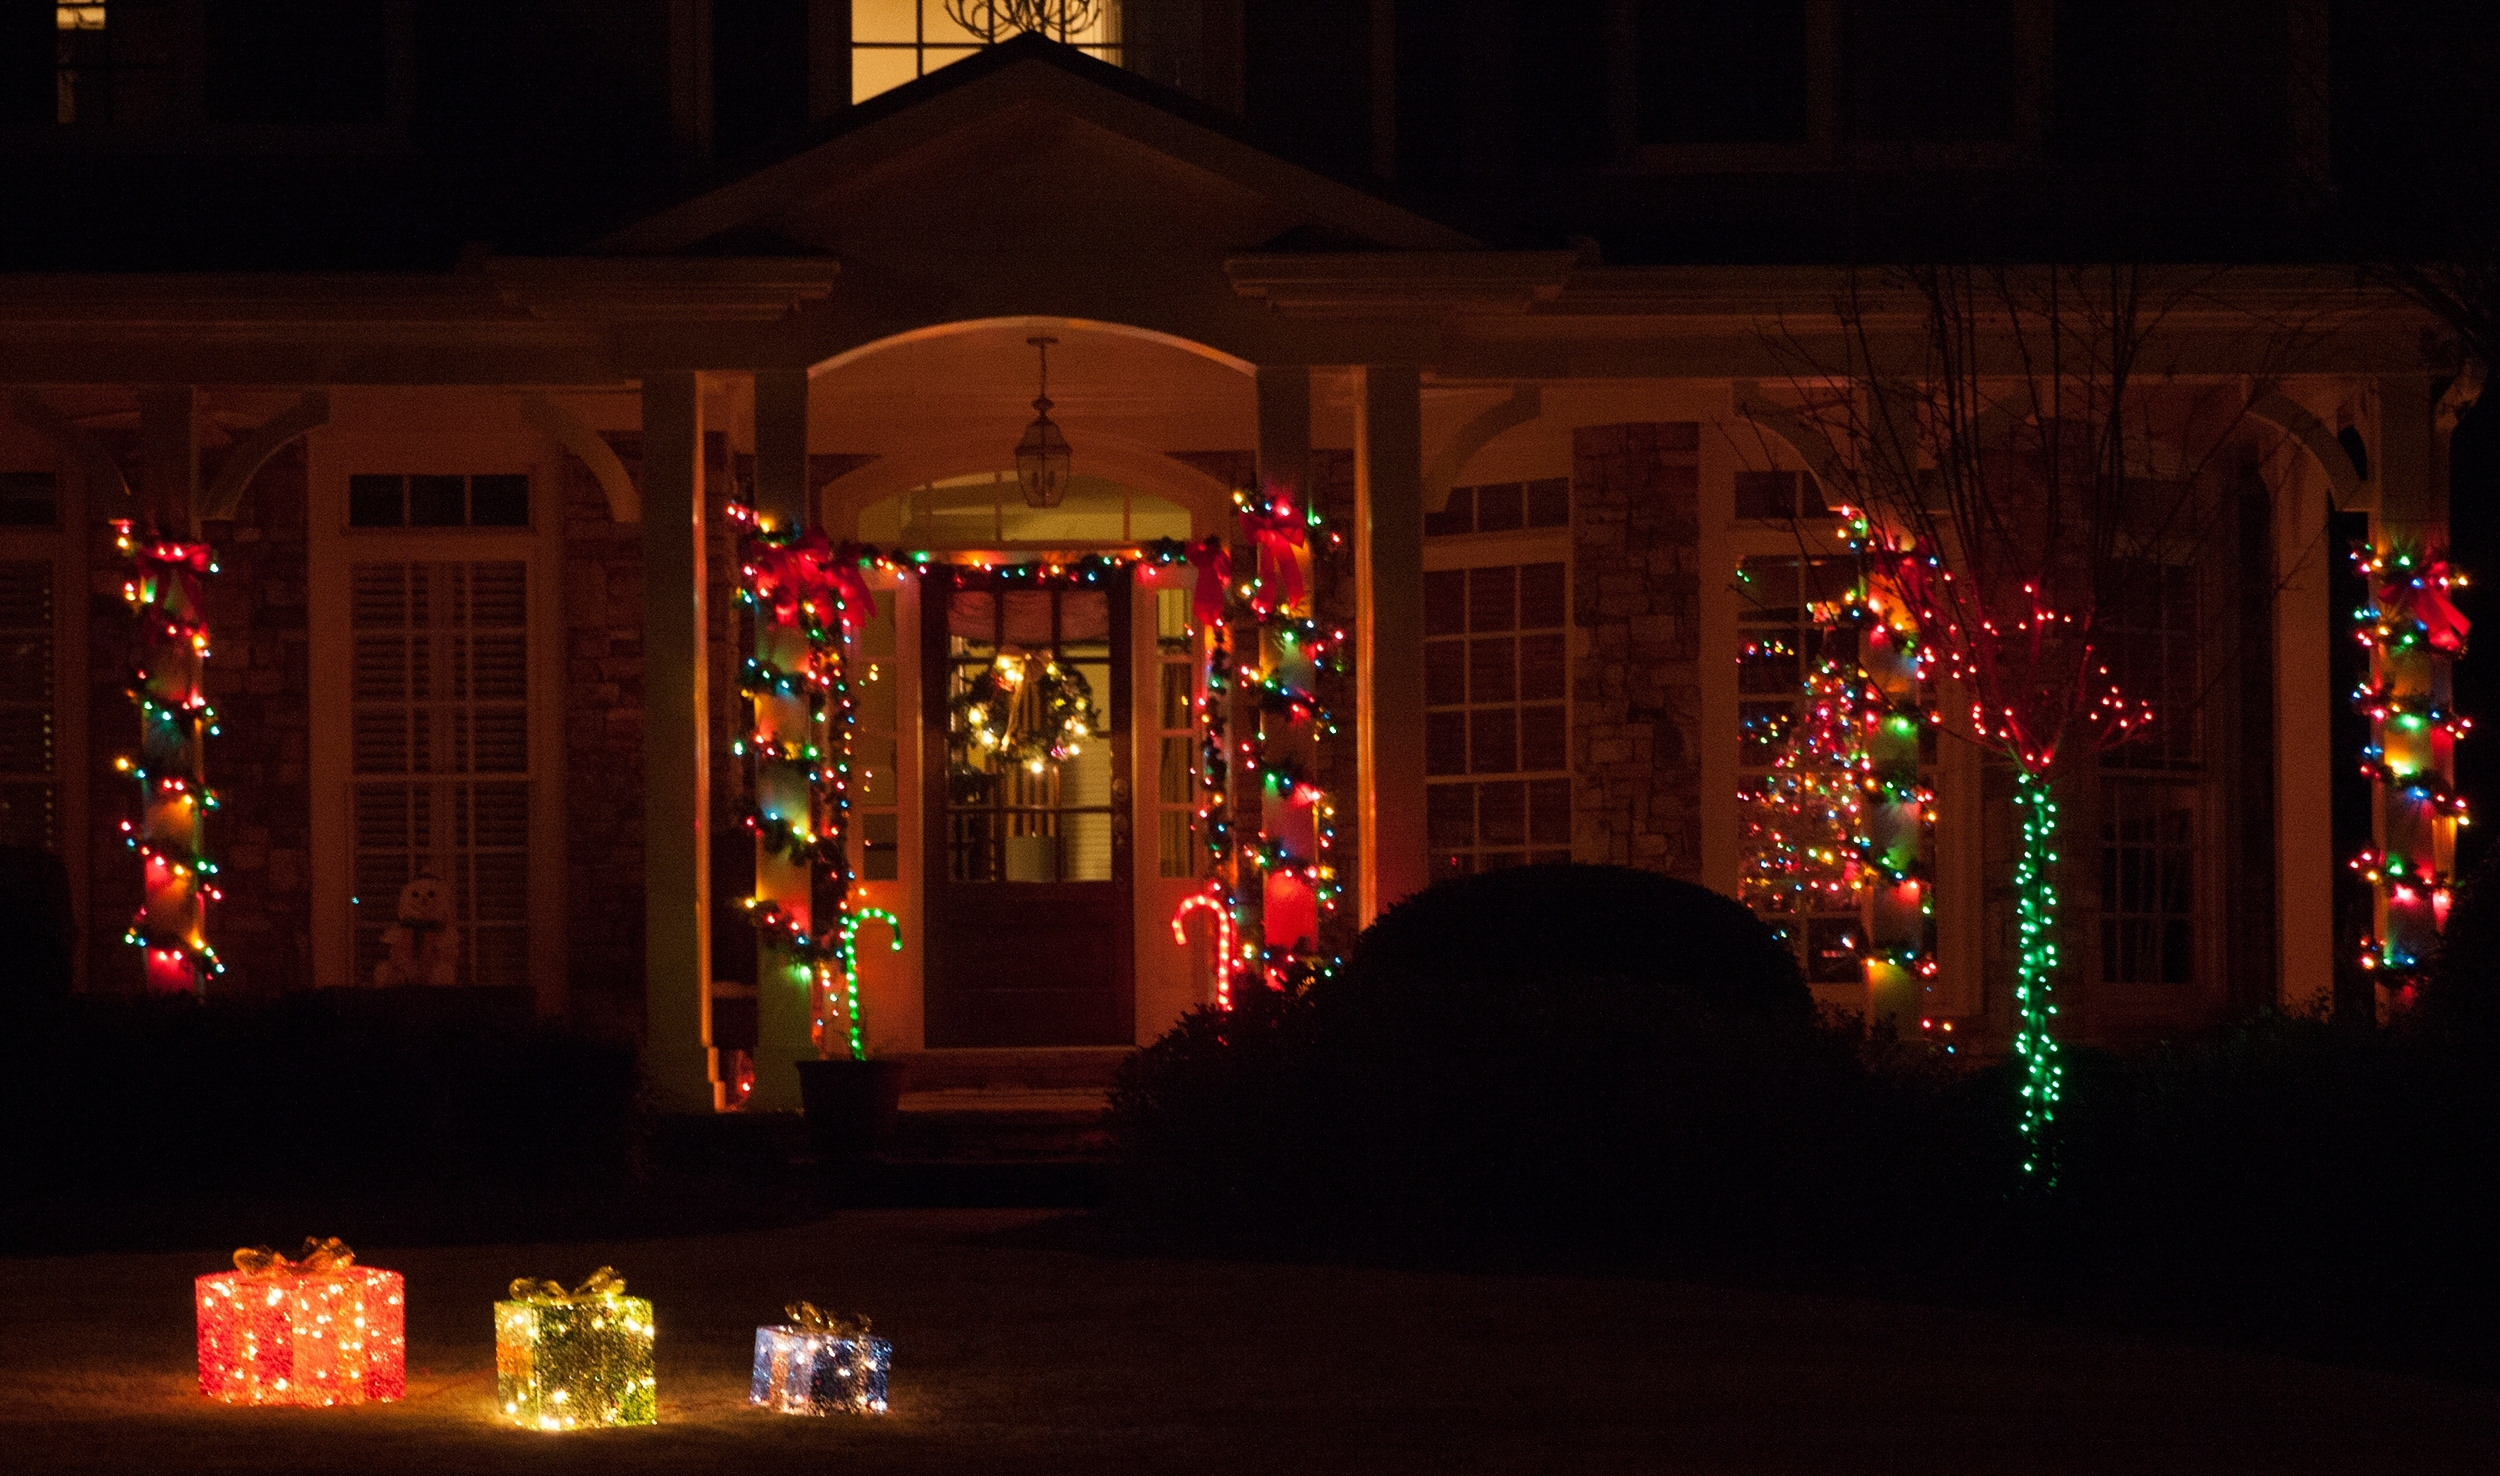 Porch Decorations With Hanging Outdoor Christmas Lights Around Windows (#15 of 15)